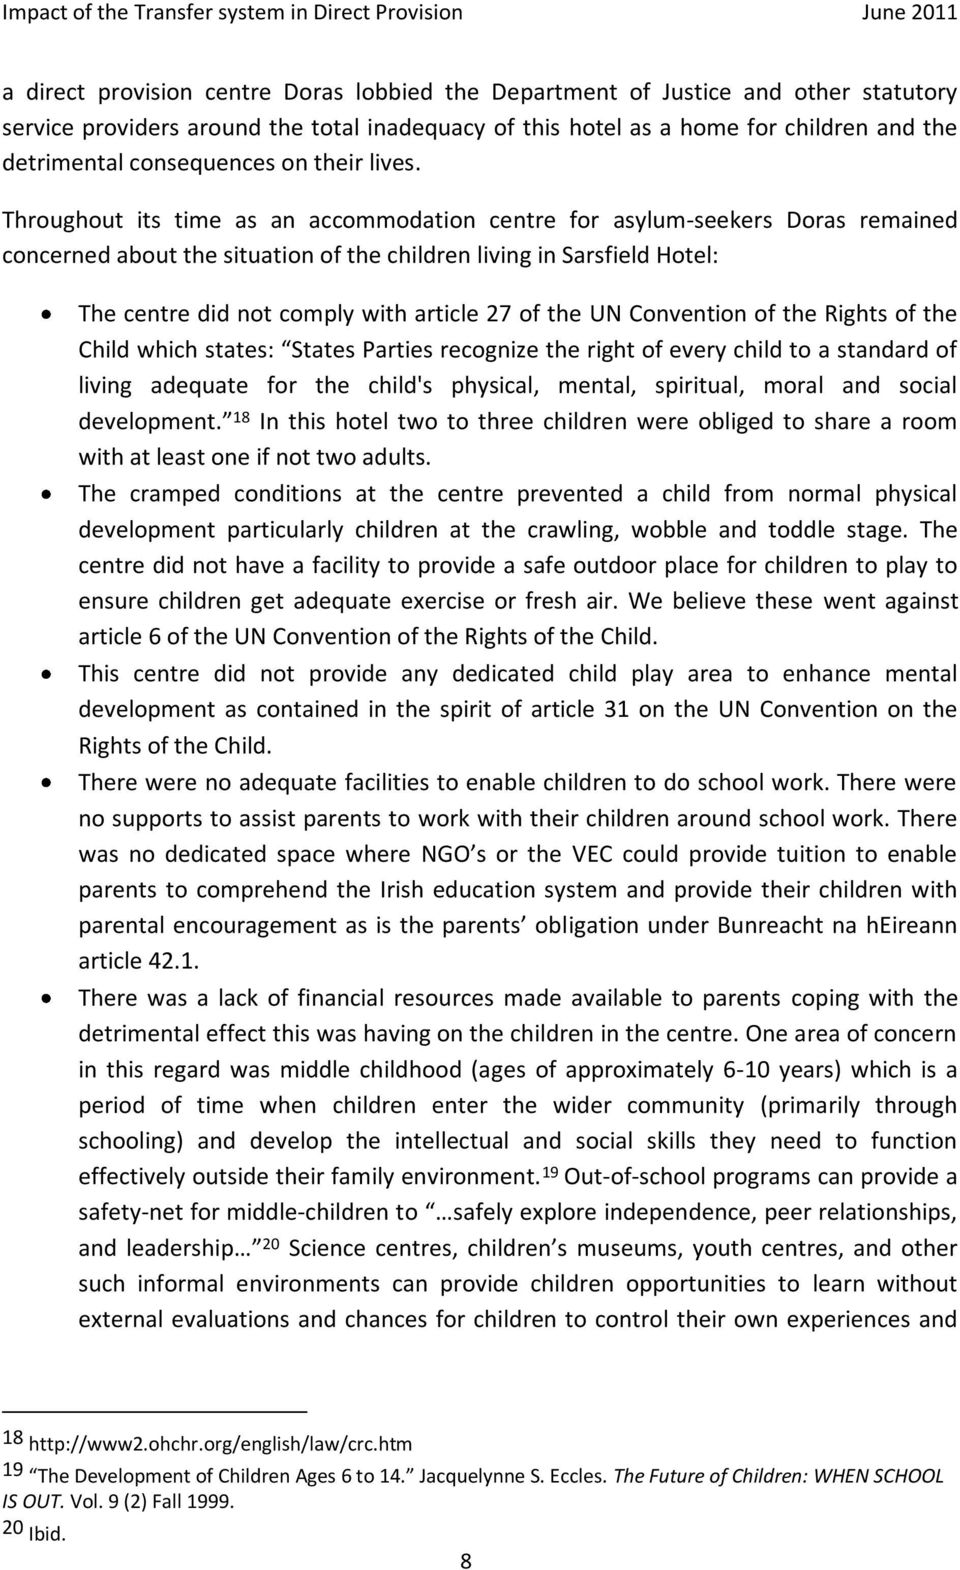 Throughout its time as an accommodation centre for asylum-seekers Doras remained concerned about the situation of the children living in Sarsfield Hotel: The centre did not comply with article 27 of